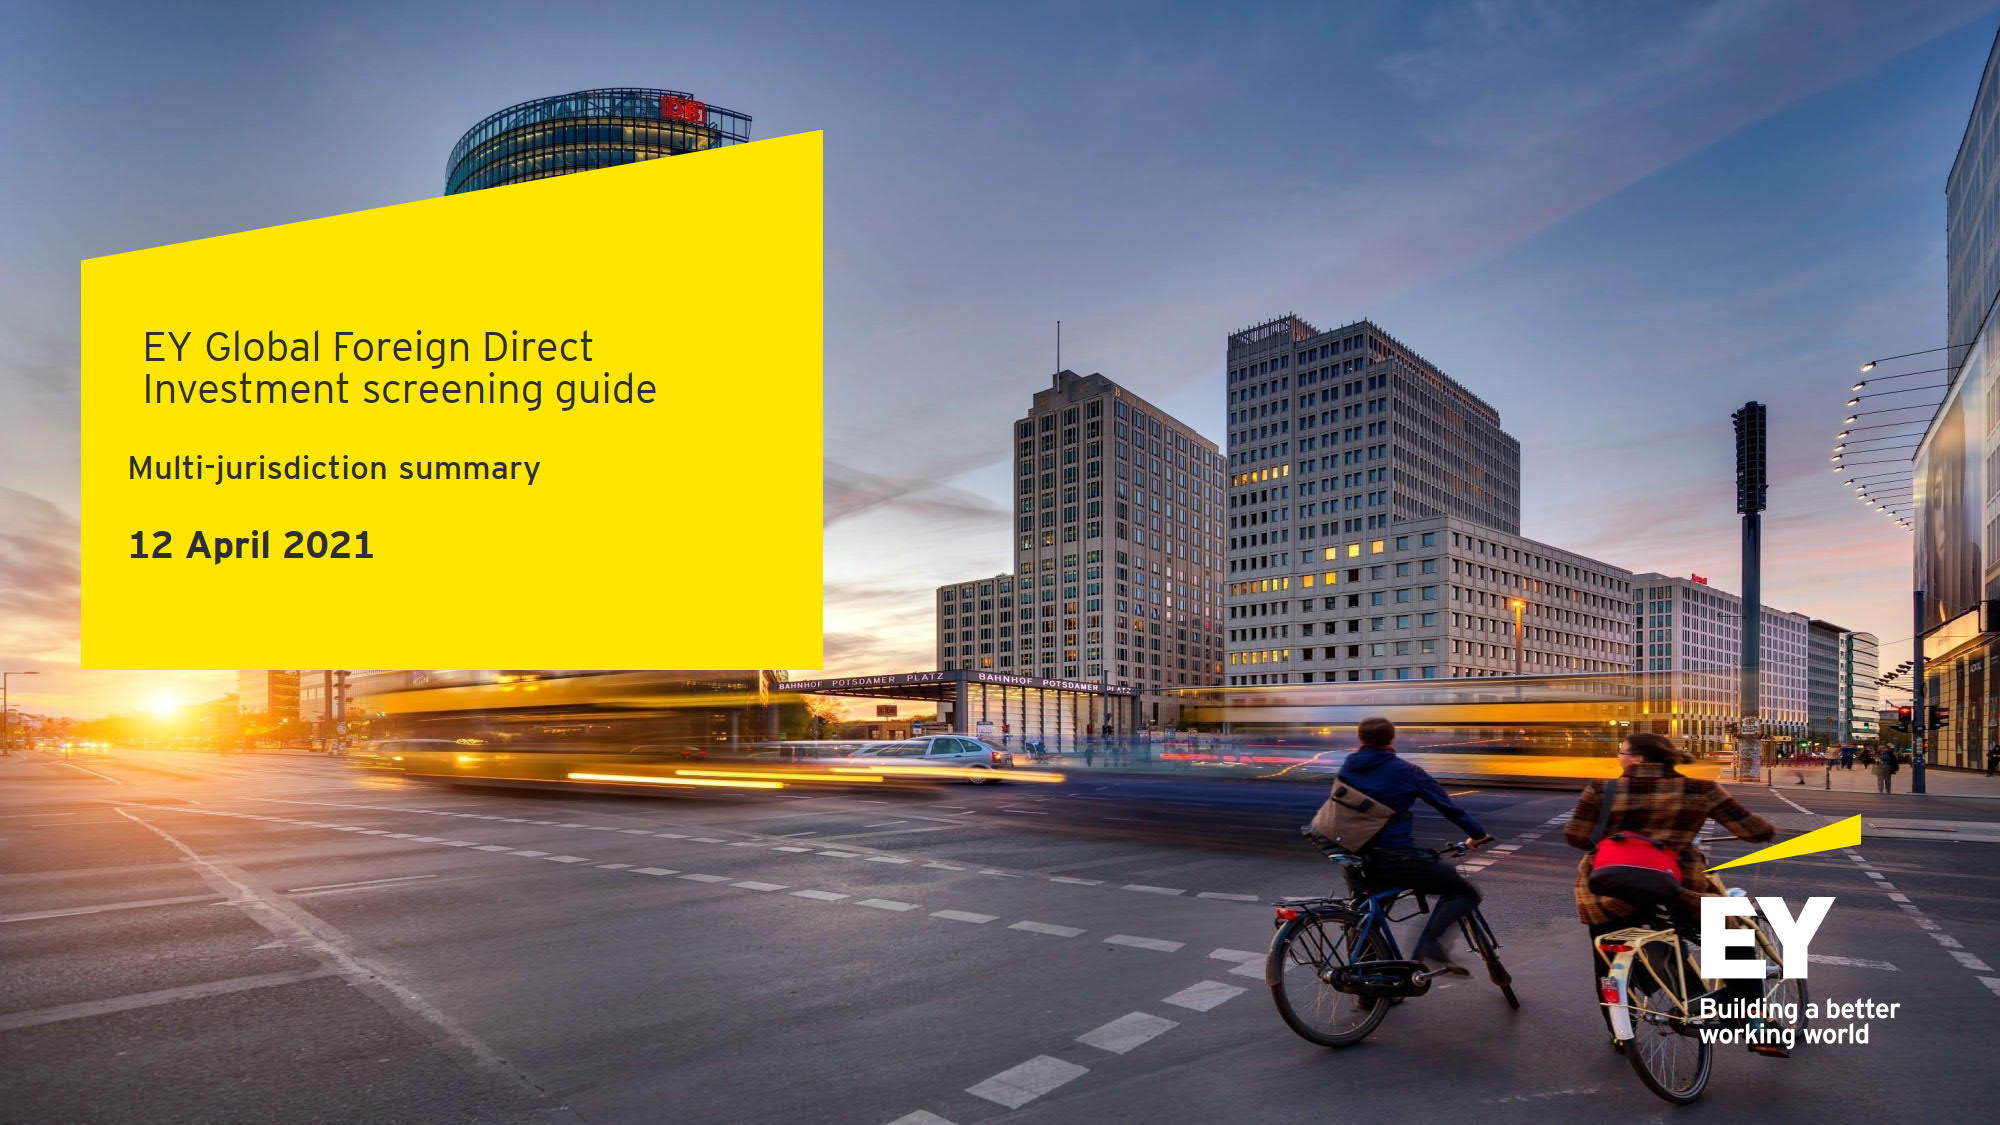 EY Global Foreign Direct Investment screening guide (Multi-jurisdiction summary)